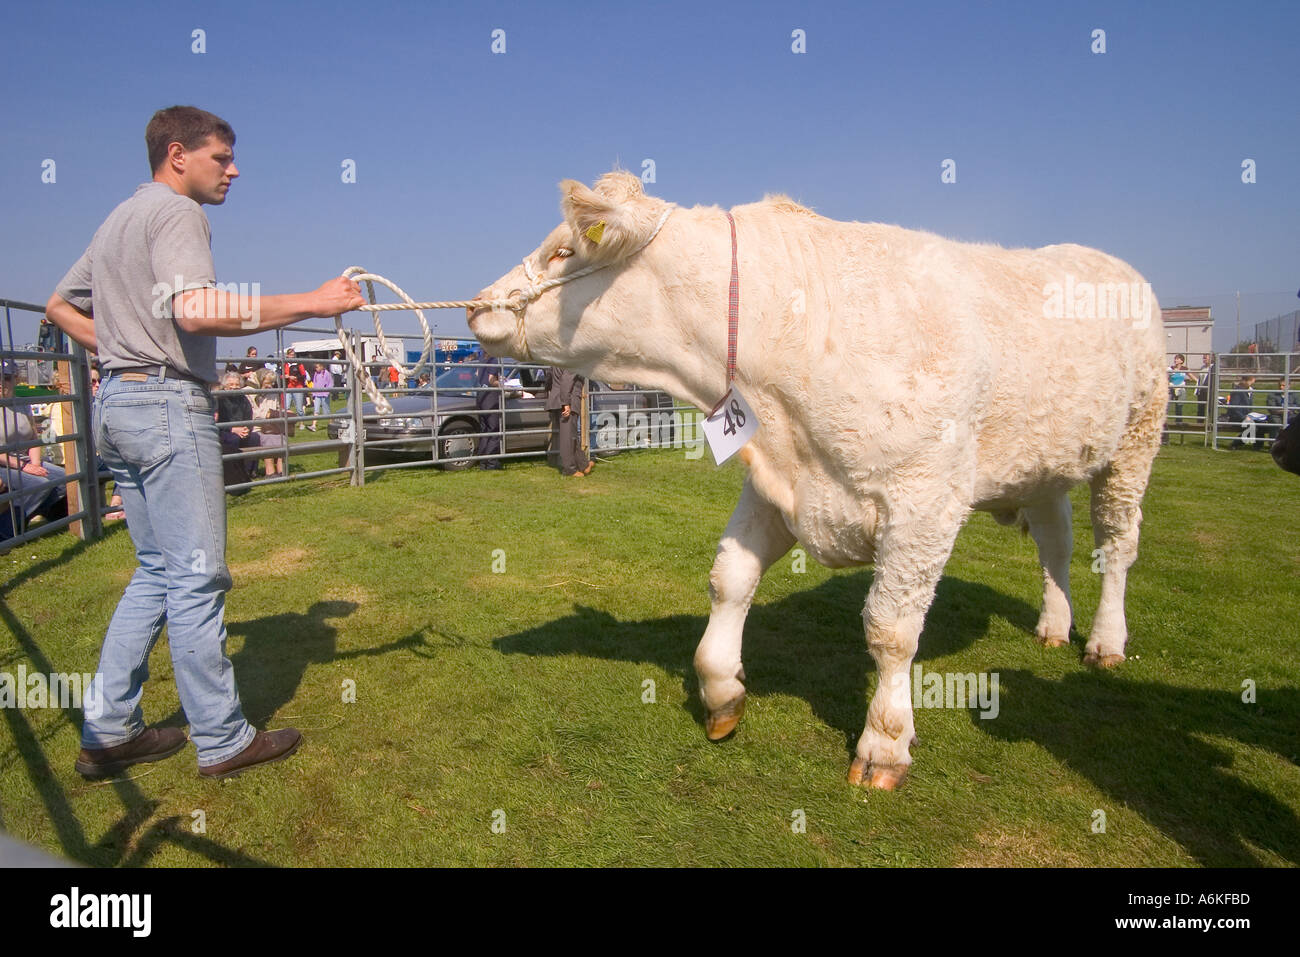 dh Annual Cattle Show SHAPINSAY ORKNEY Beef cow in ring Charolais Heifer  at agricultural show Stock Photo